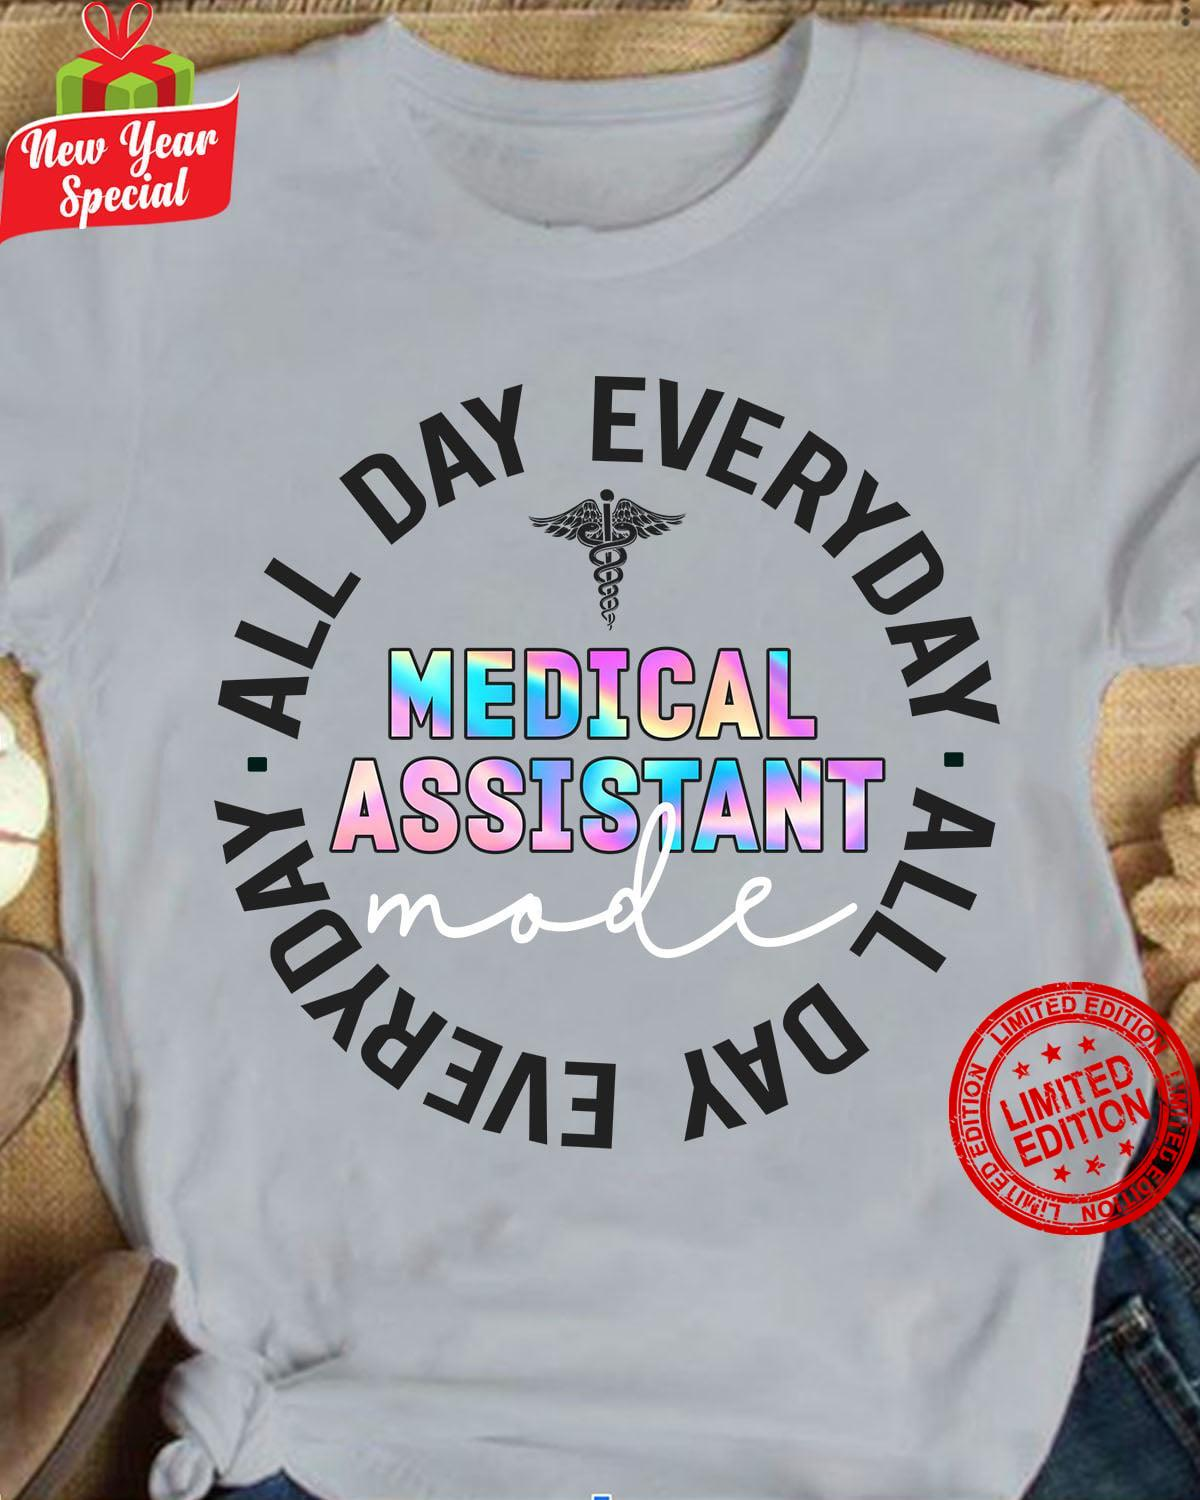 All Day Everyday Medical Assistant Shirt